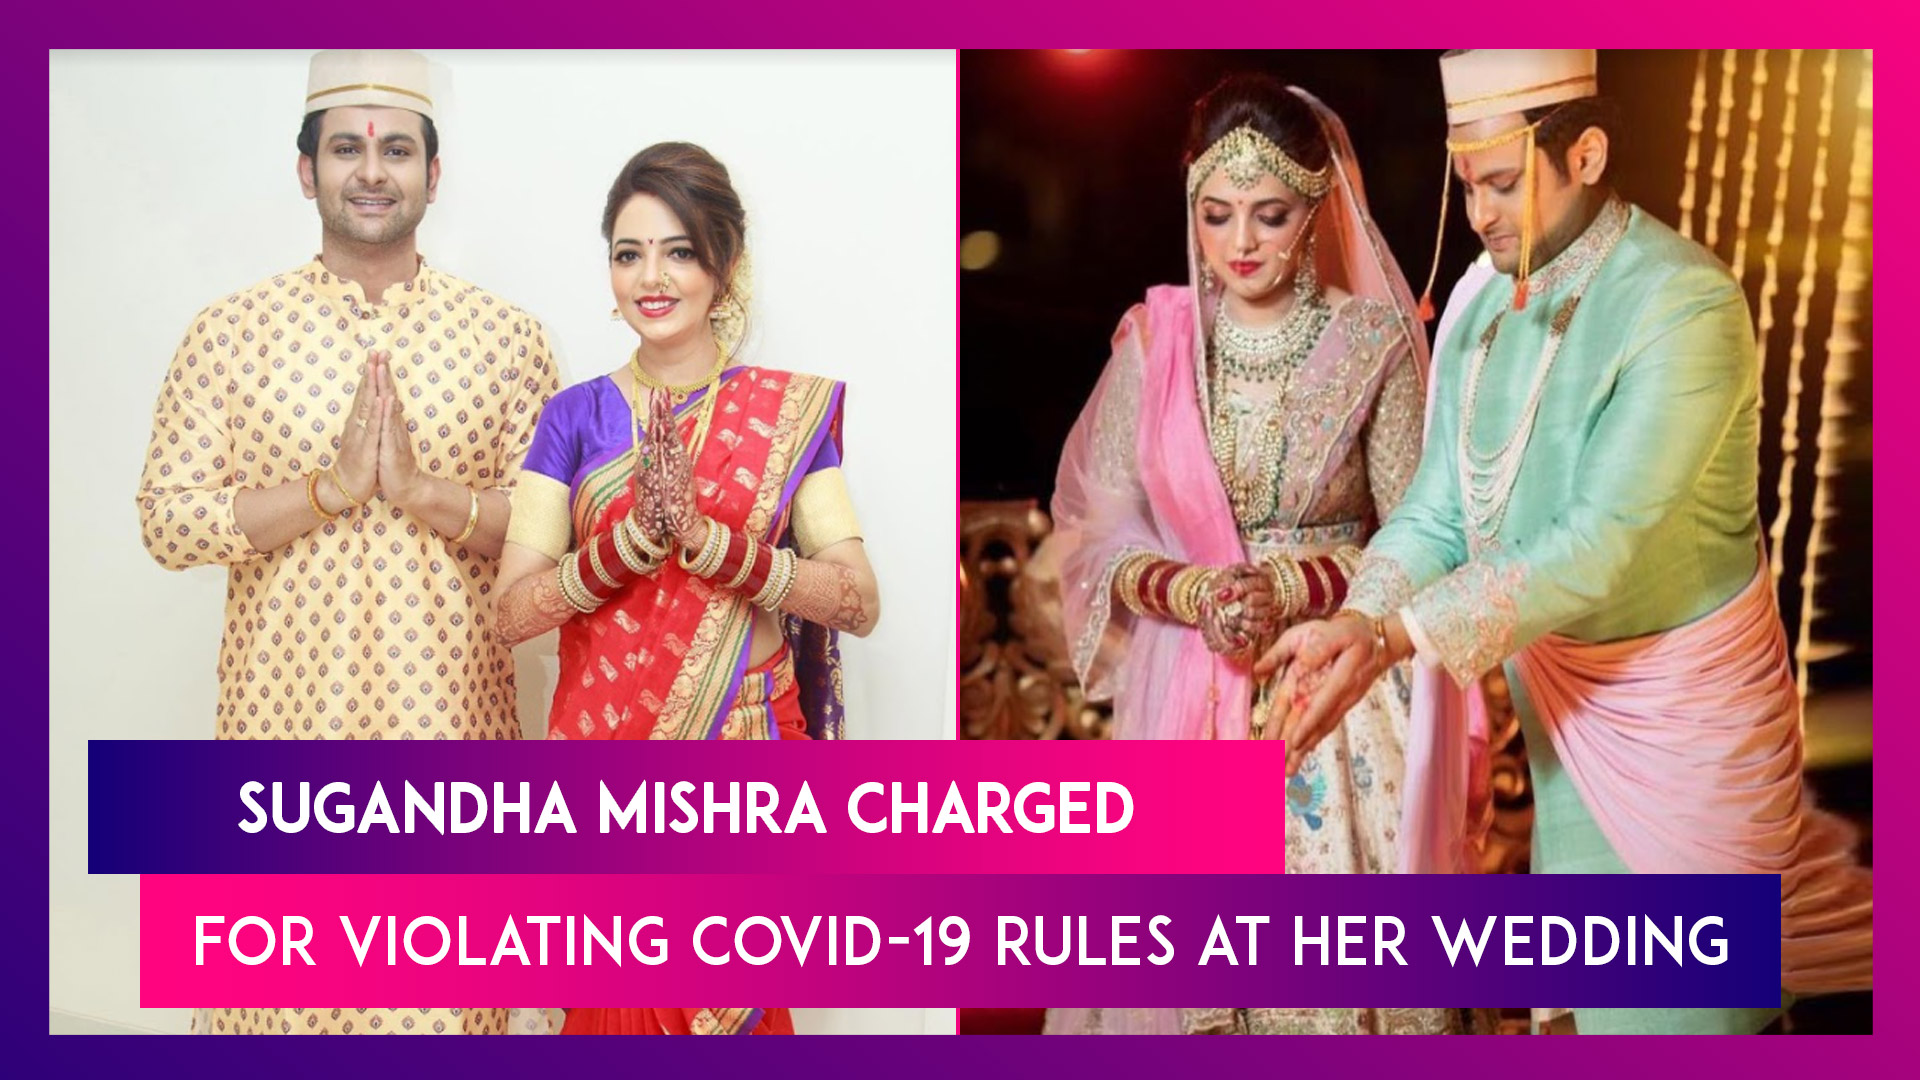 Sugandha Mishra Charged For Violating Covid-19 Rules At Her Wedding; Radhika Madan & Pulkit Samrat Get Their First Vaccine Shot